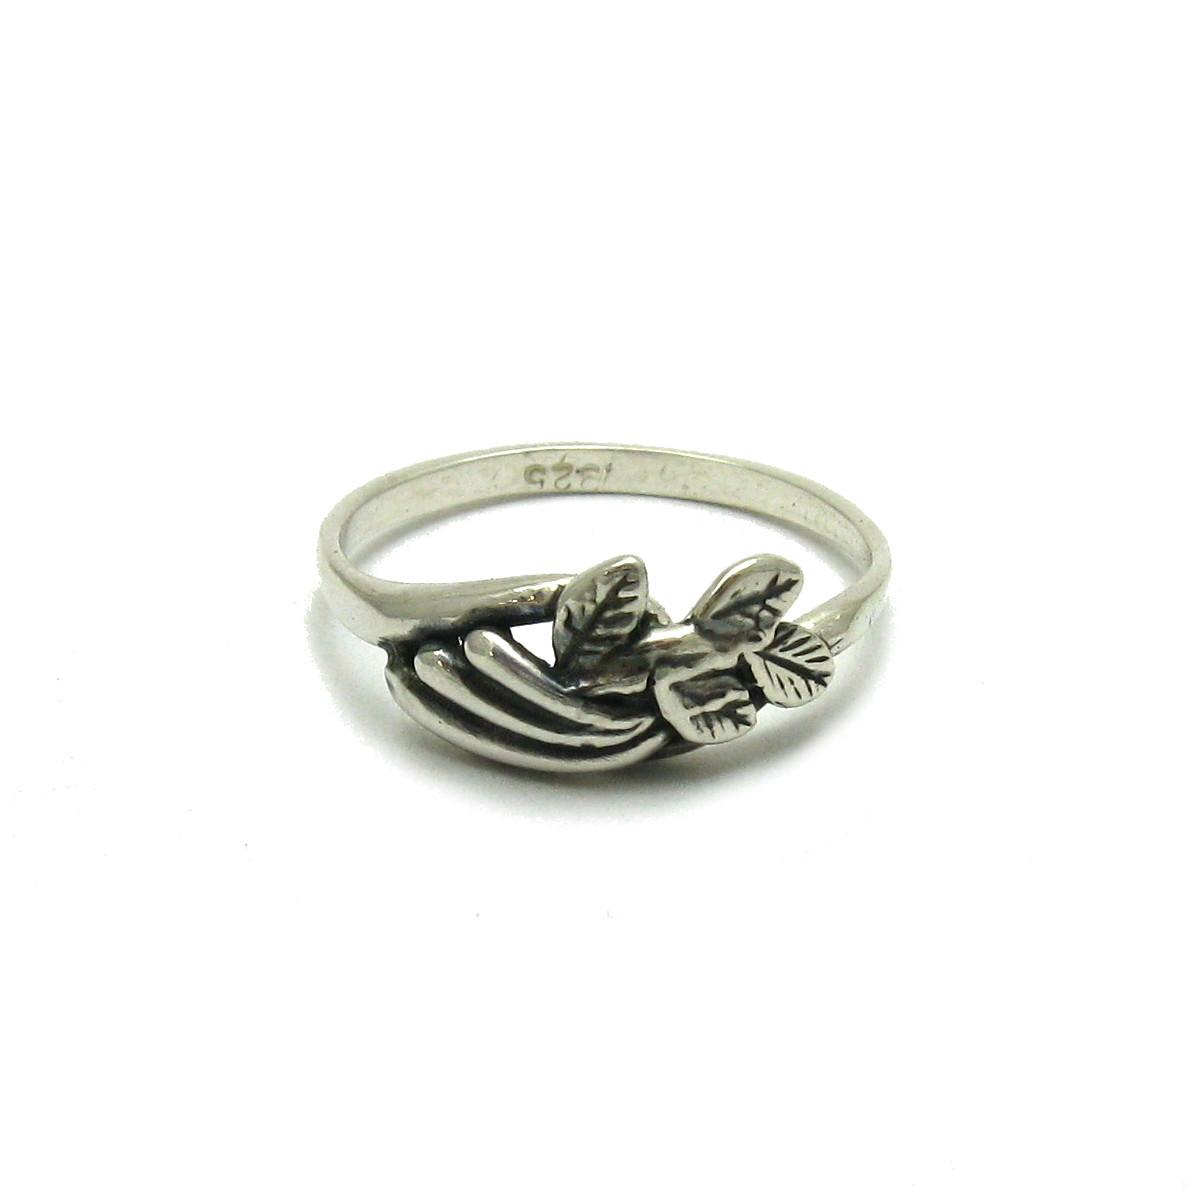 Silver ring - R001688